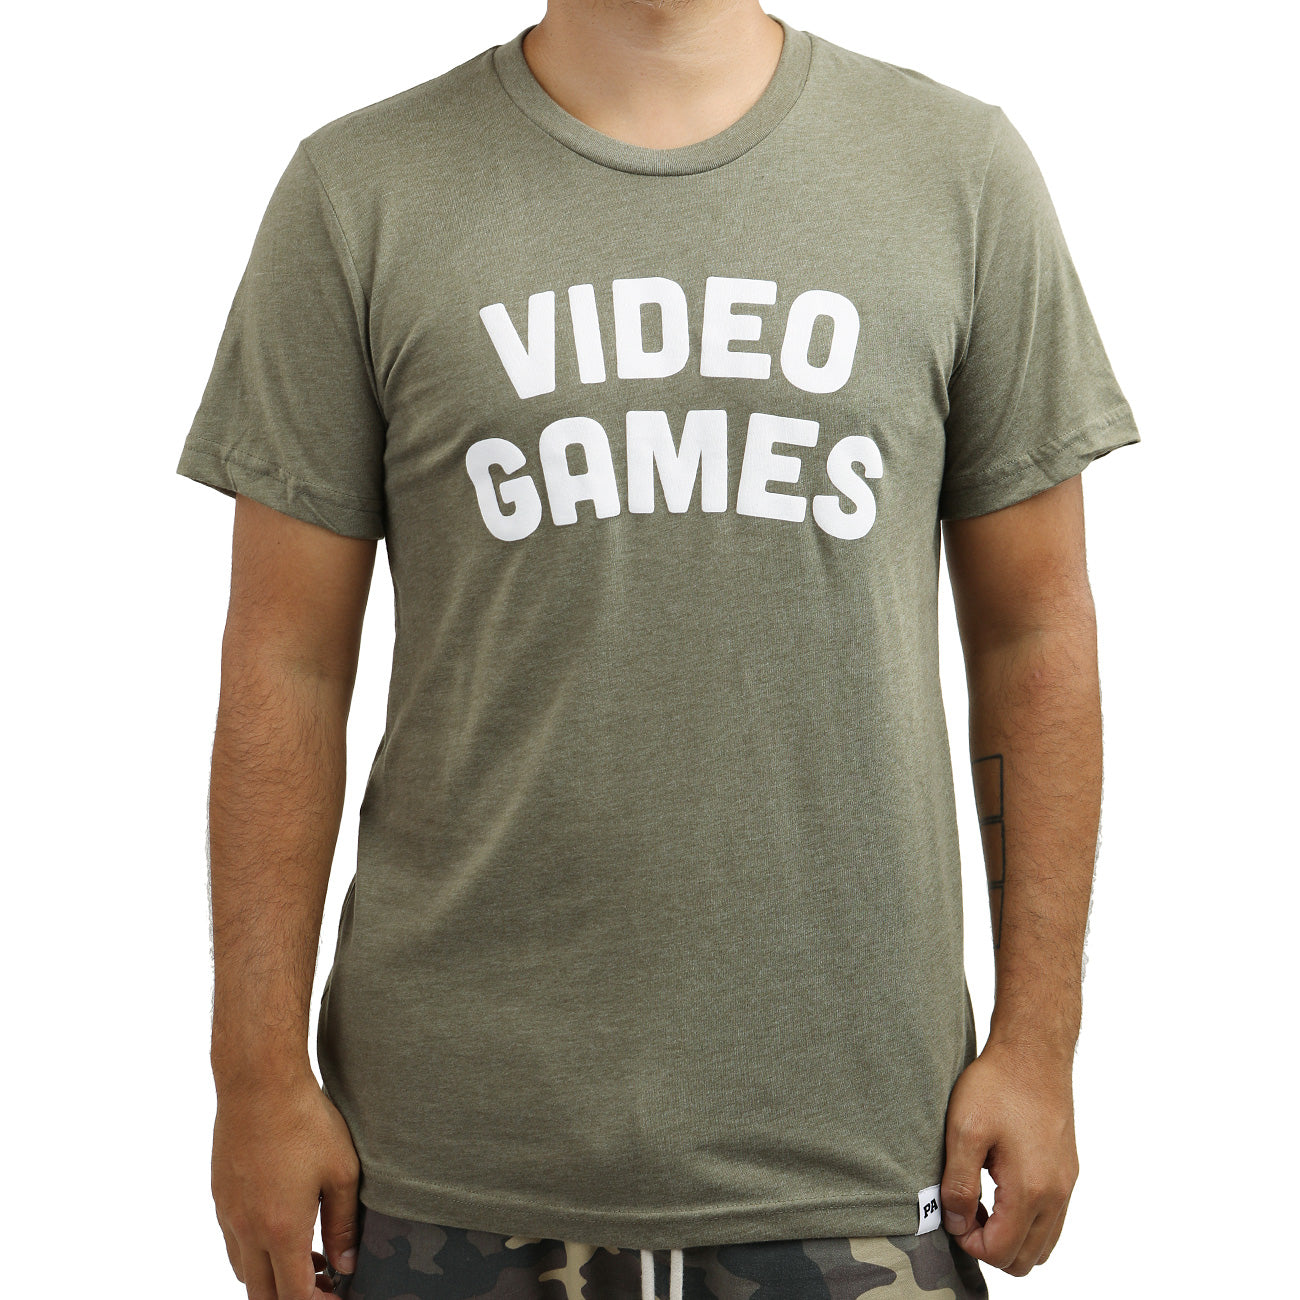 VIDEO GAMES (Olive)